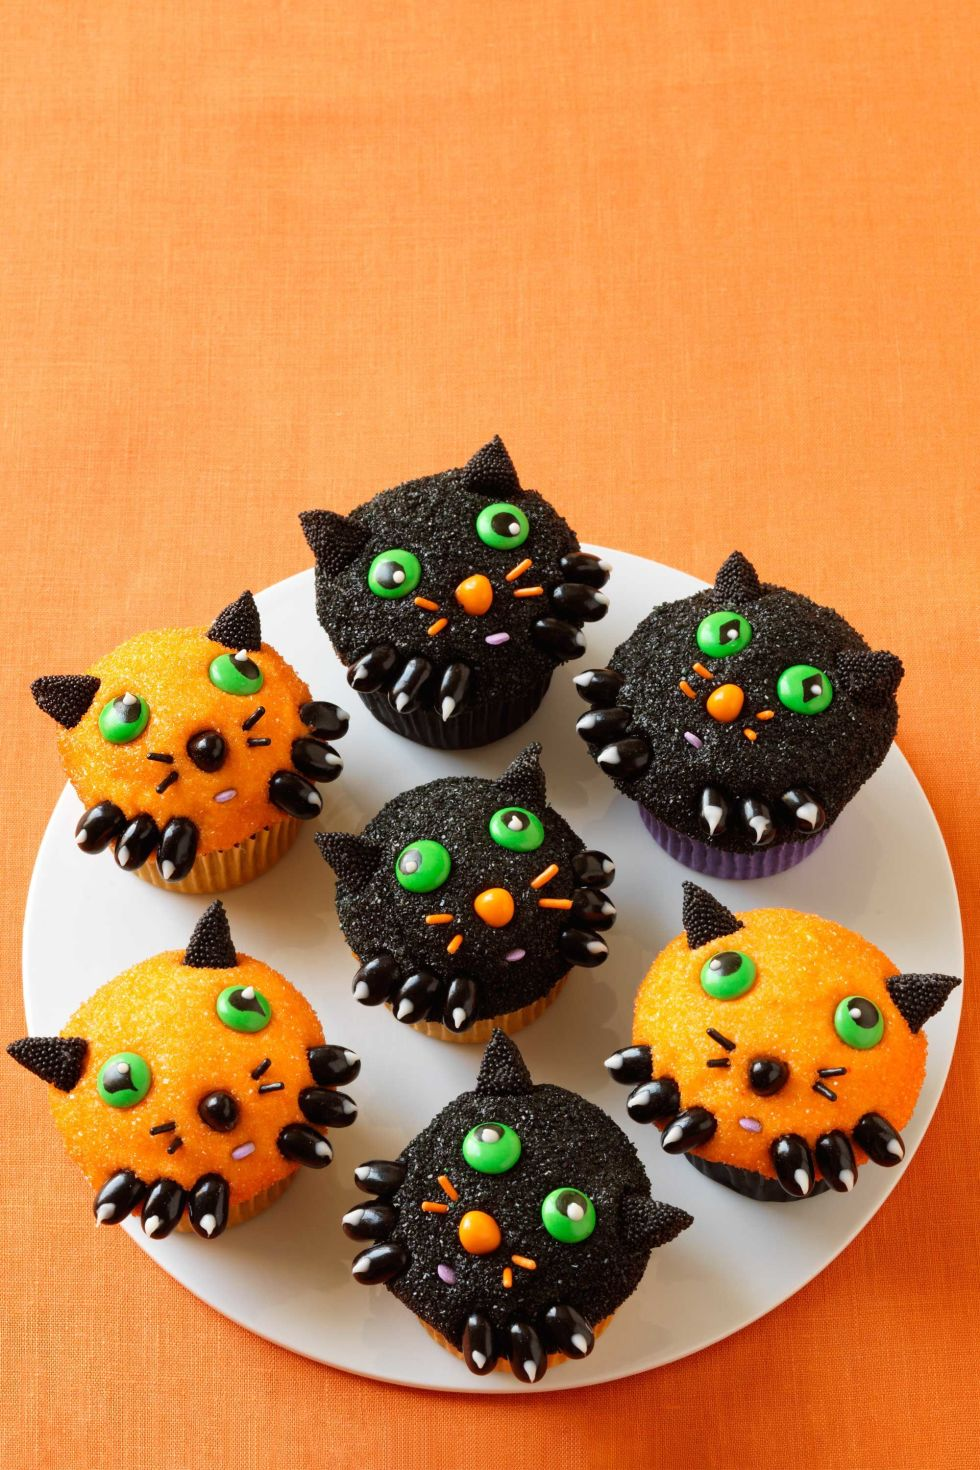 35 halloween cupcake ideas recipes for cute and scary halloween desserts - Halloween Scary Desserts